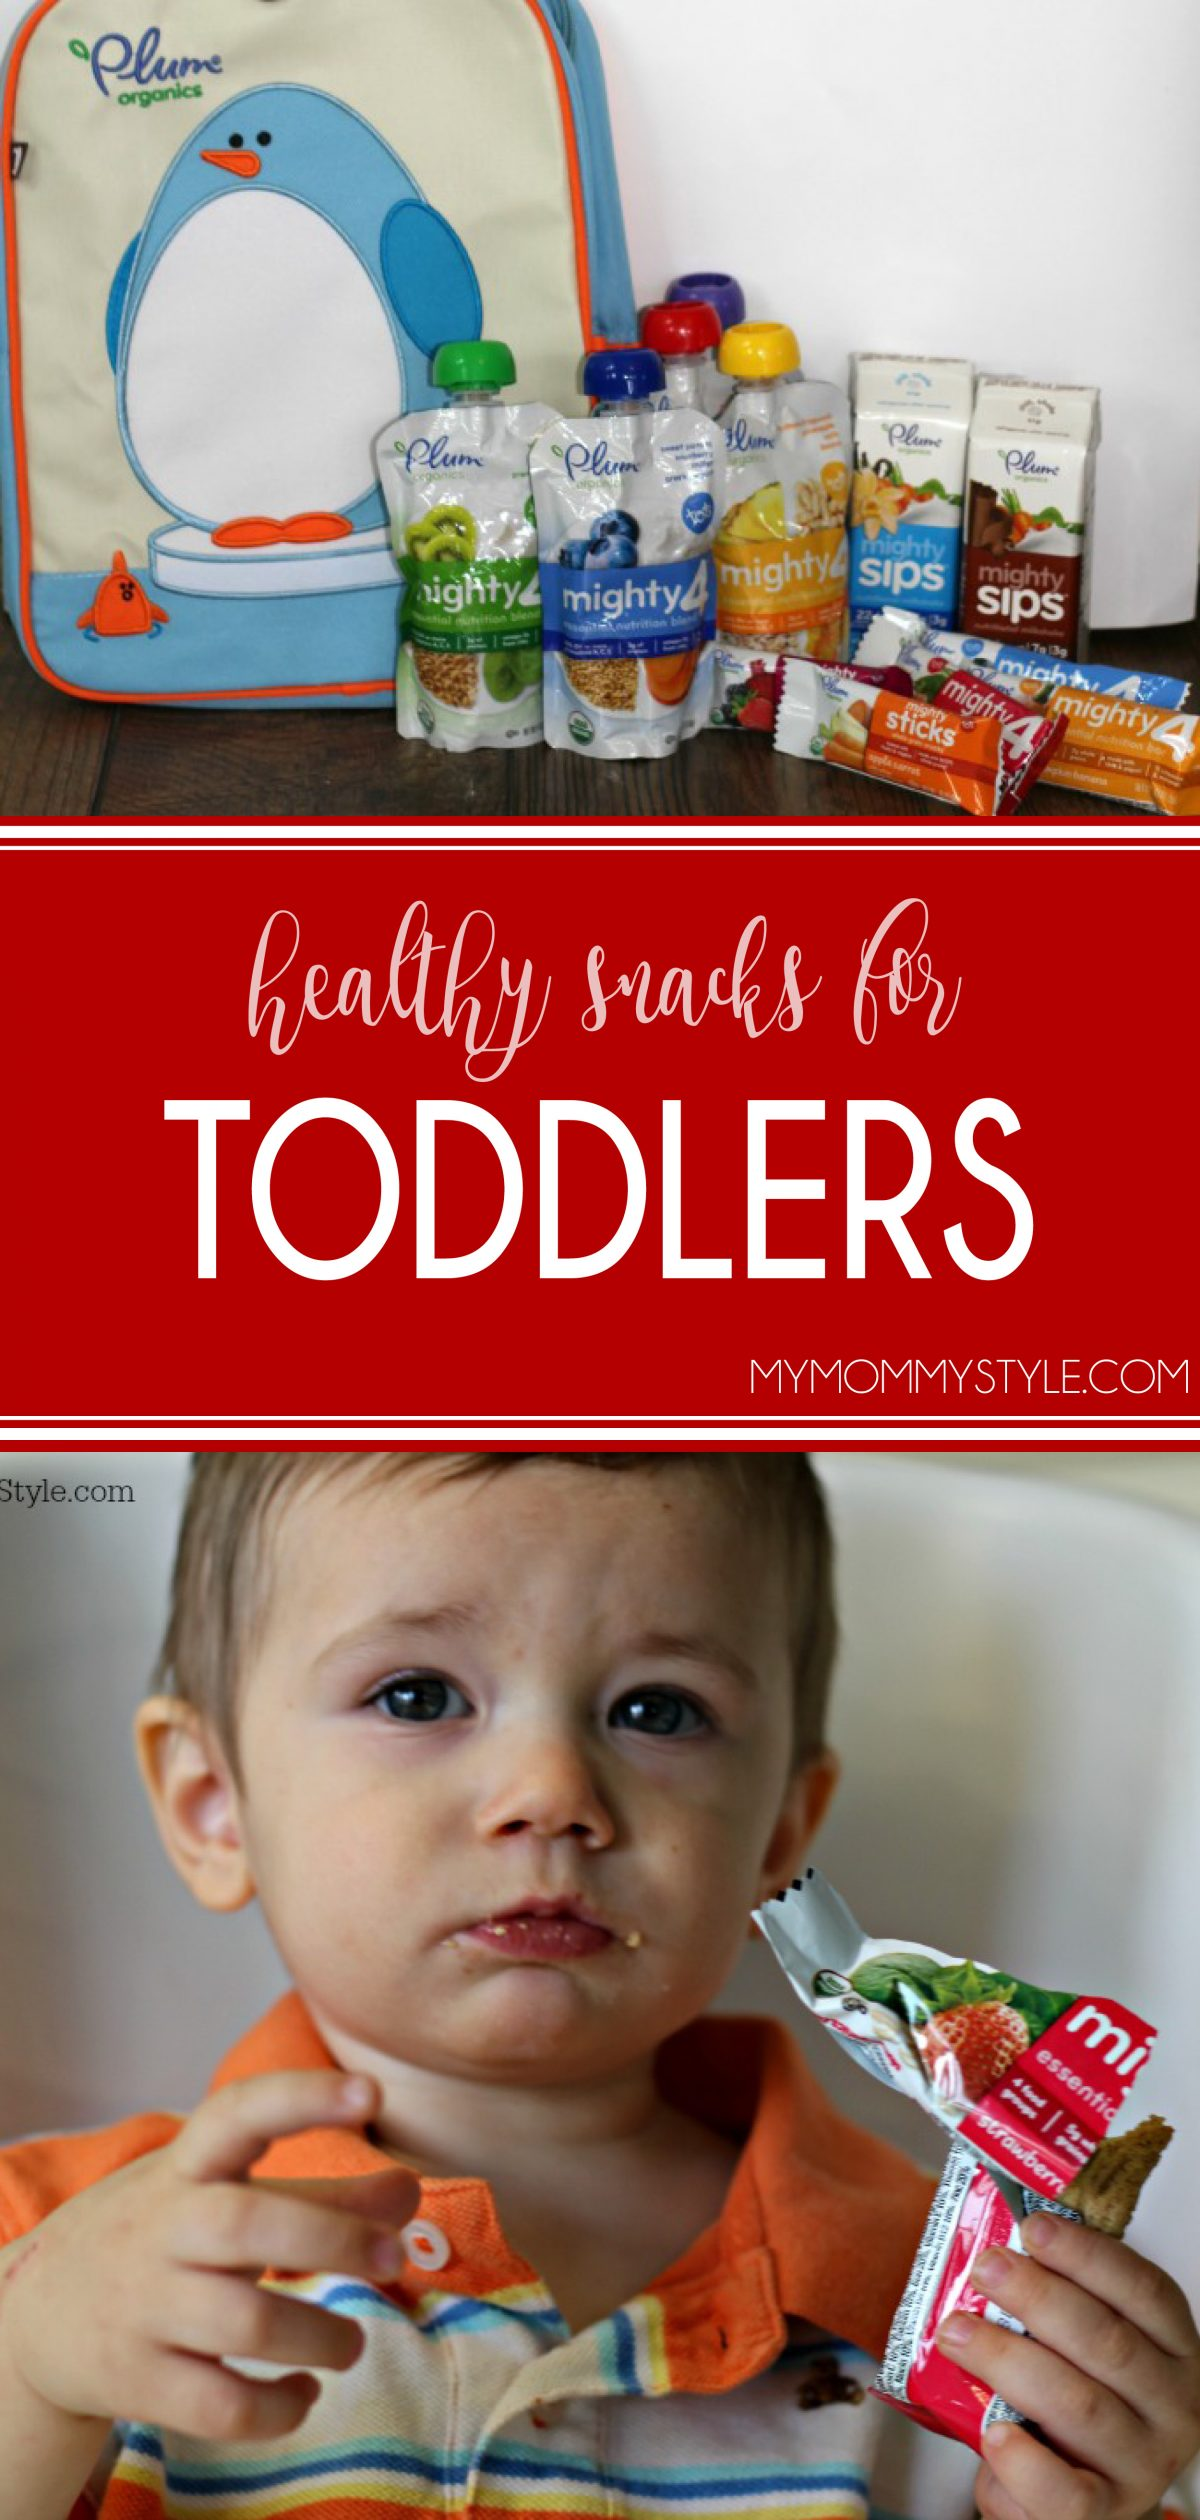 Healthy snacks for toddlers can be hard to find especially when on the go. This list of snacks will help you give your toddler the nutrition he/she needs! via @mymommystyle